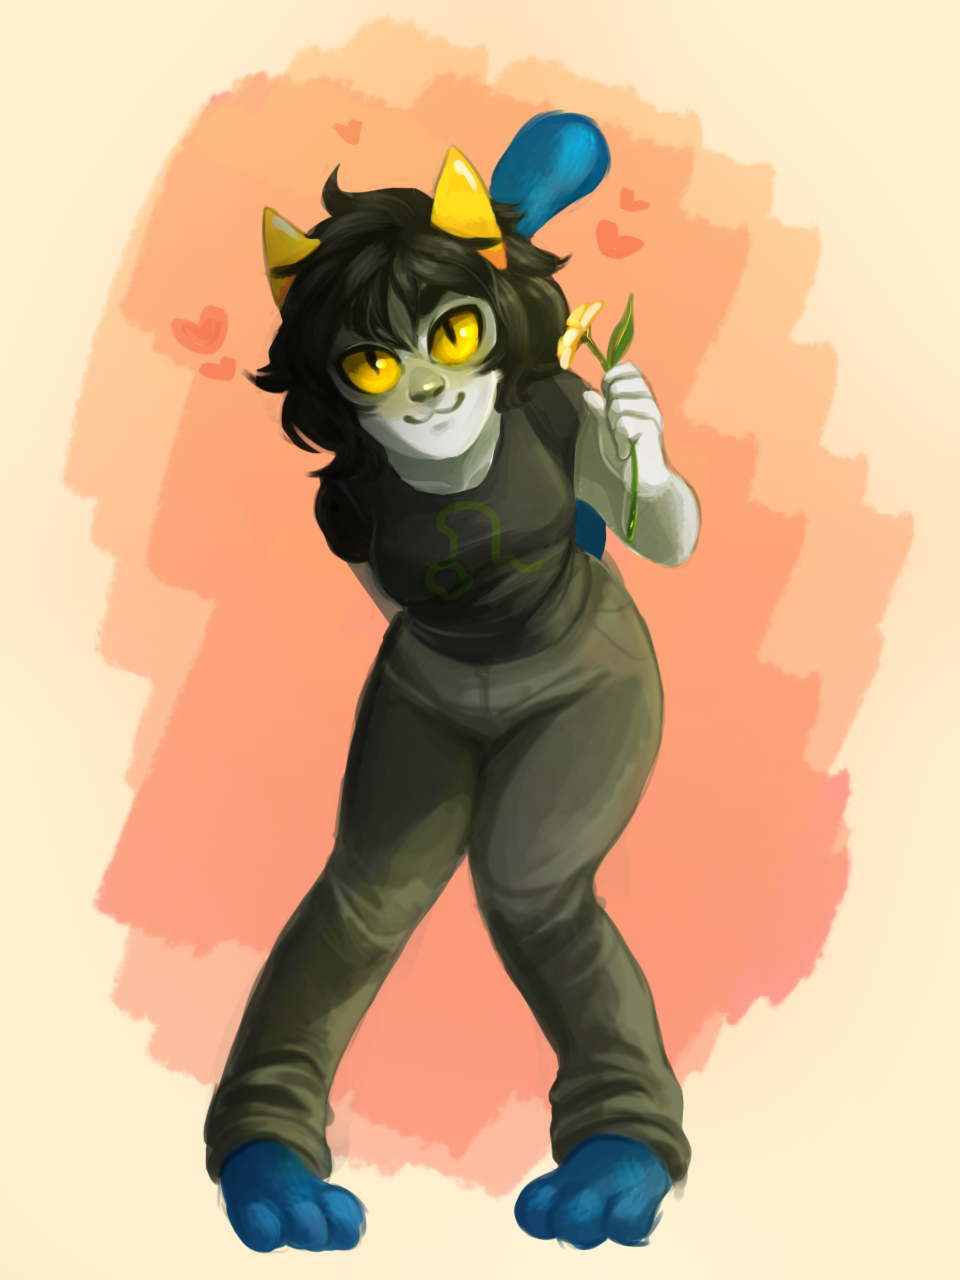 kubbypan:  here i present you nepeta giving you a flower